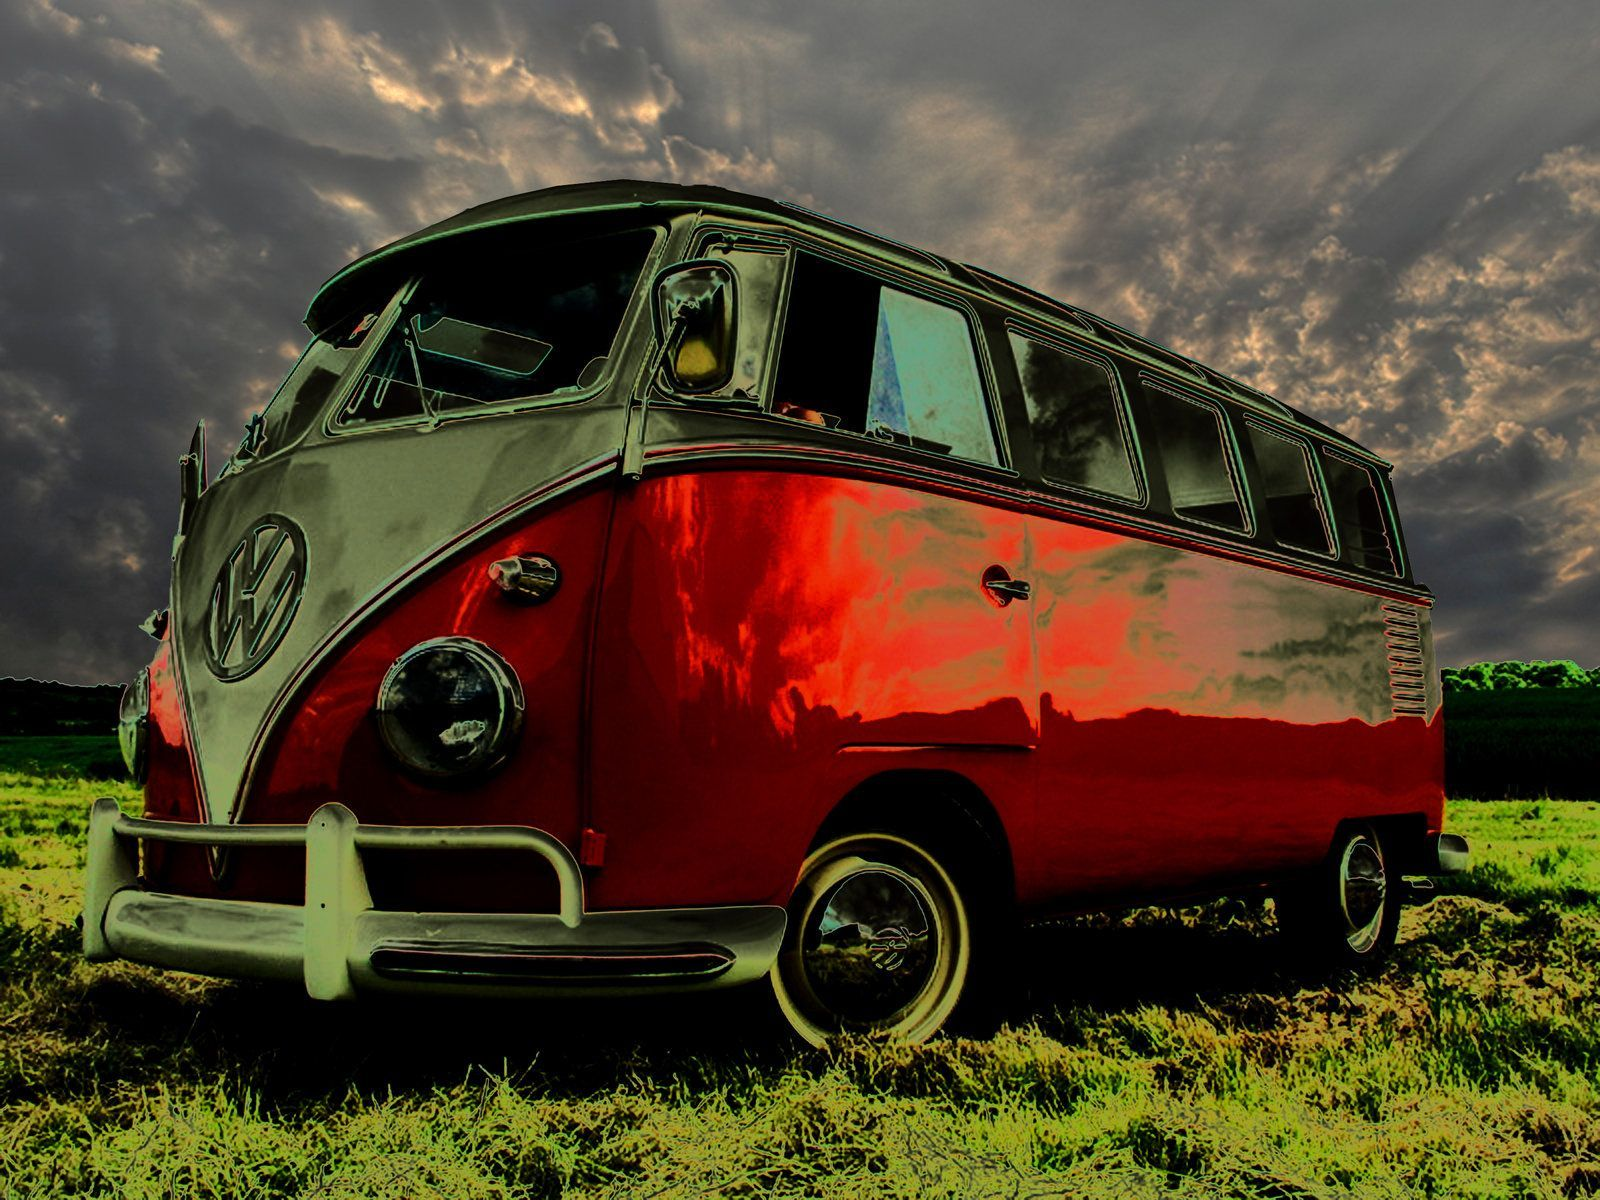 Camper Wallpapers Top Free Camper Backgrounds Wallpaperaccess